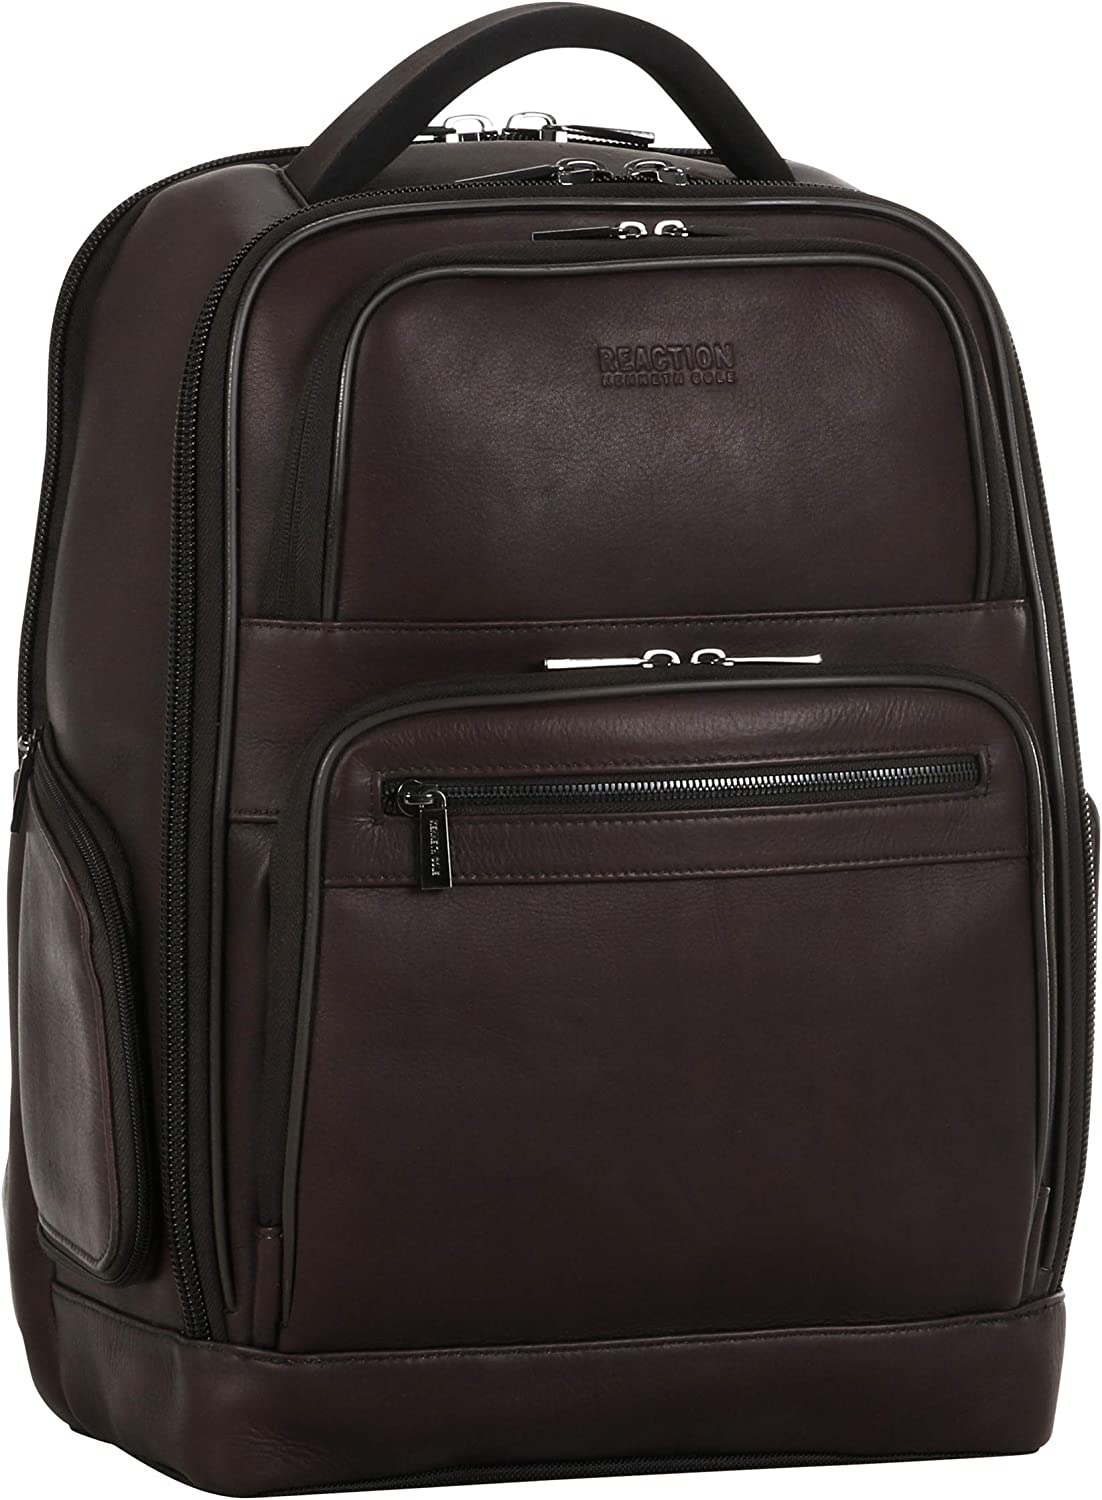 "Kenneth Cole Reaction Colombian Leather Dual Compartment 15.6"" Laptop Anti-Theft RFID Business Backpack, Brown"